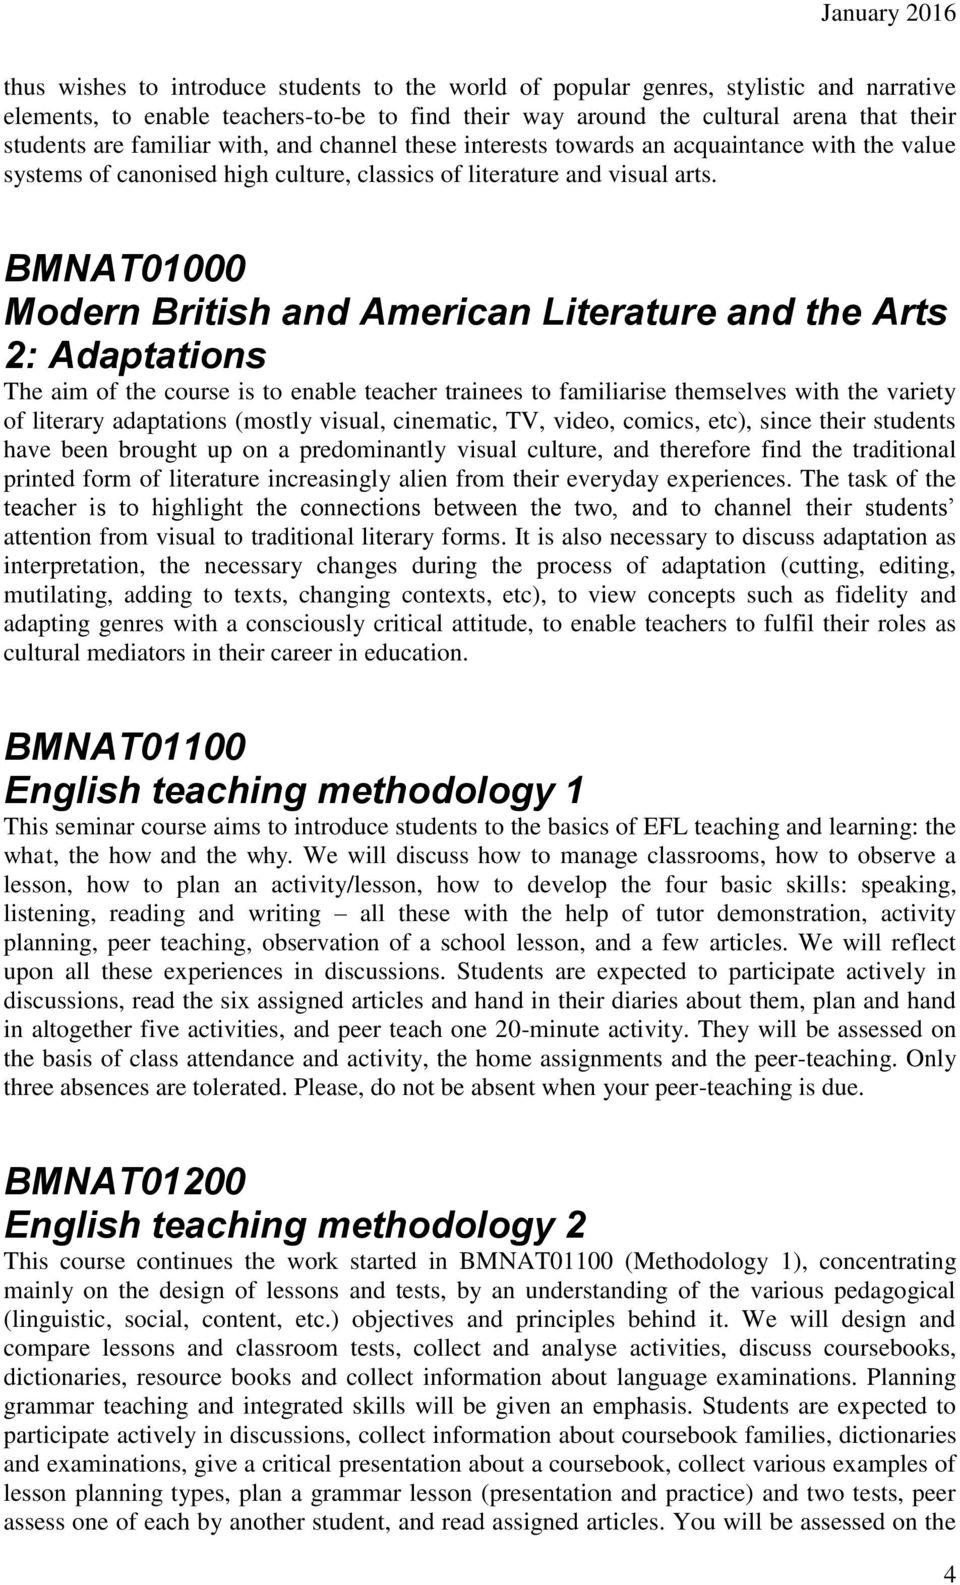 BMNAT01000 Modern British and American Literature and the Arts 2: Adaptations The aim of the course is to enable teacher trainees to familiarise themselves with the variety of literary adaptations